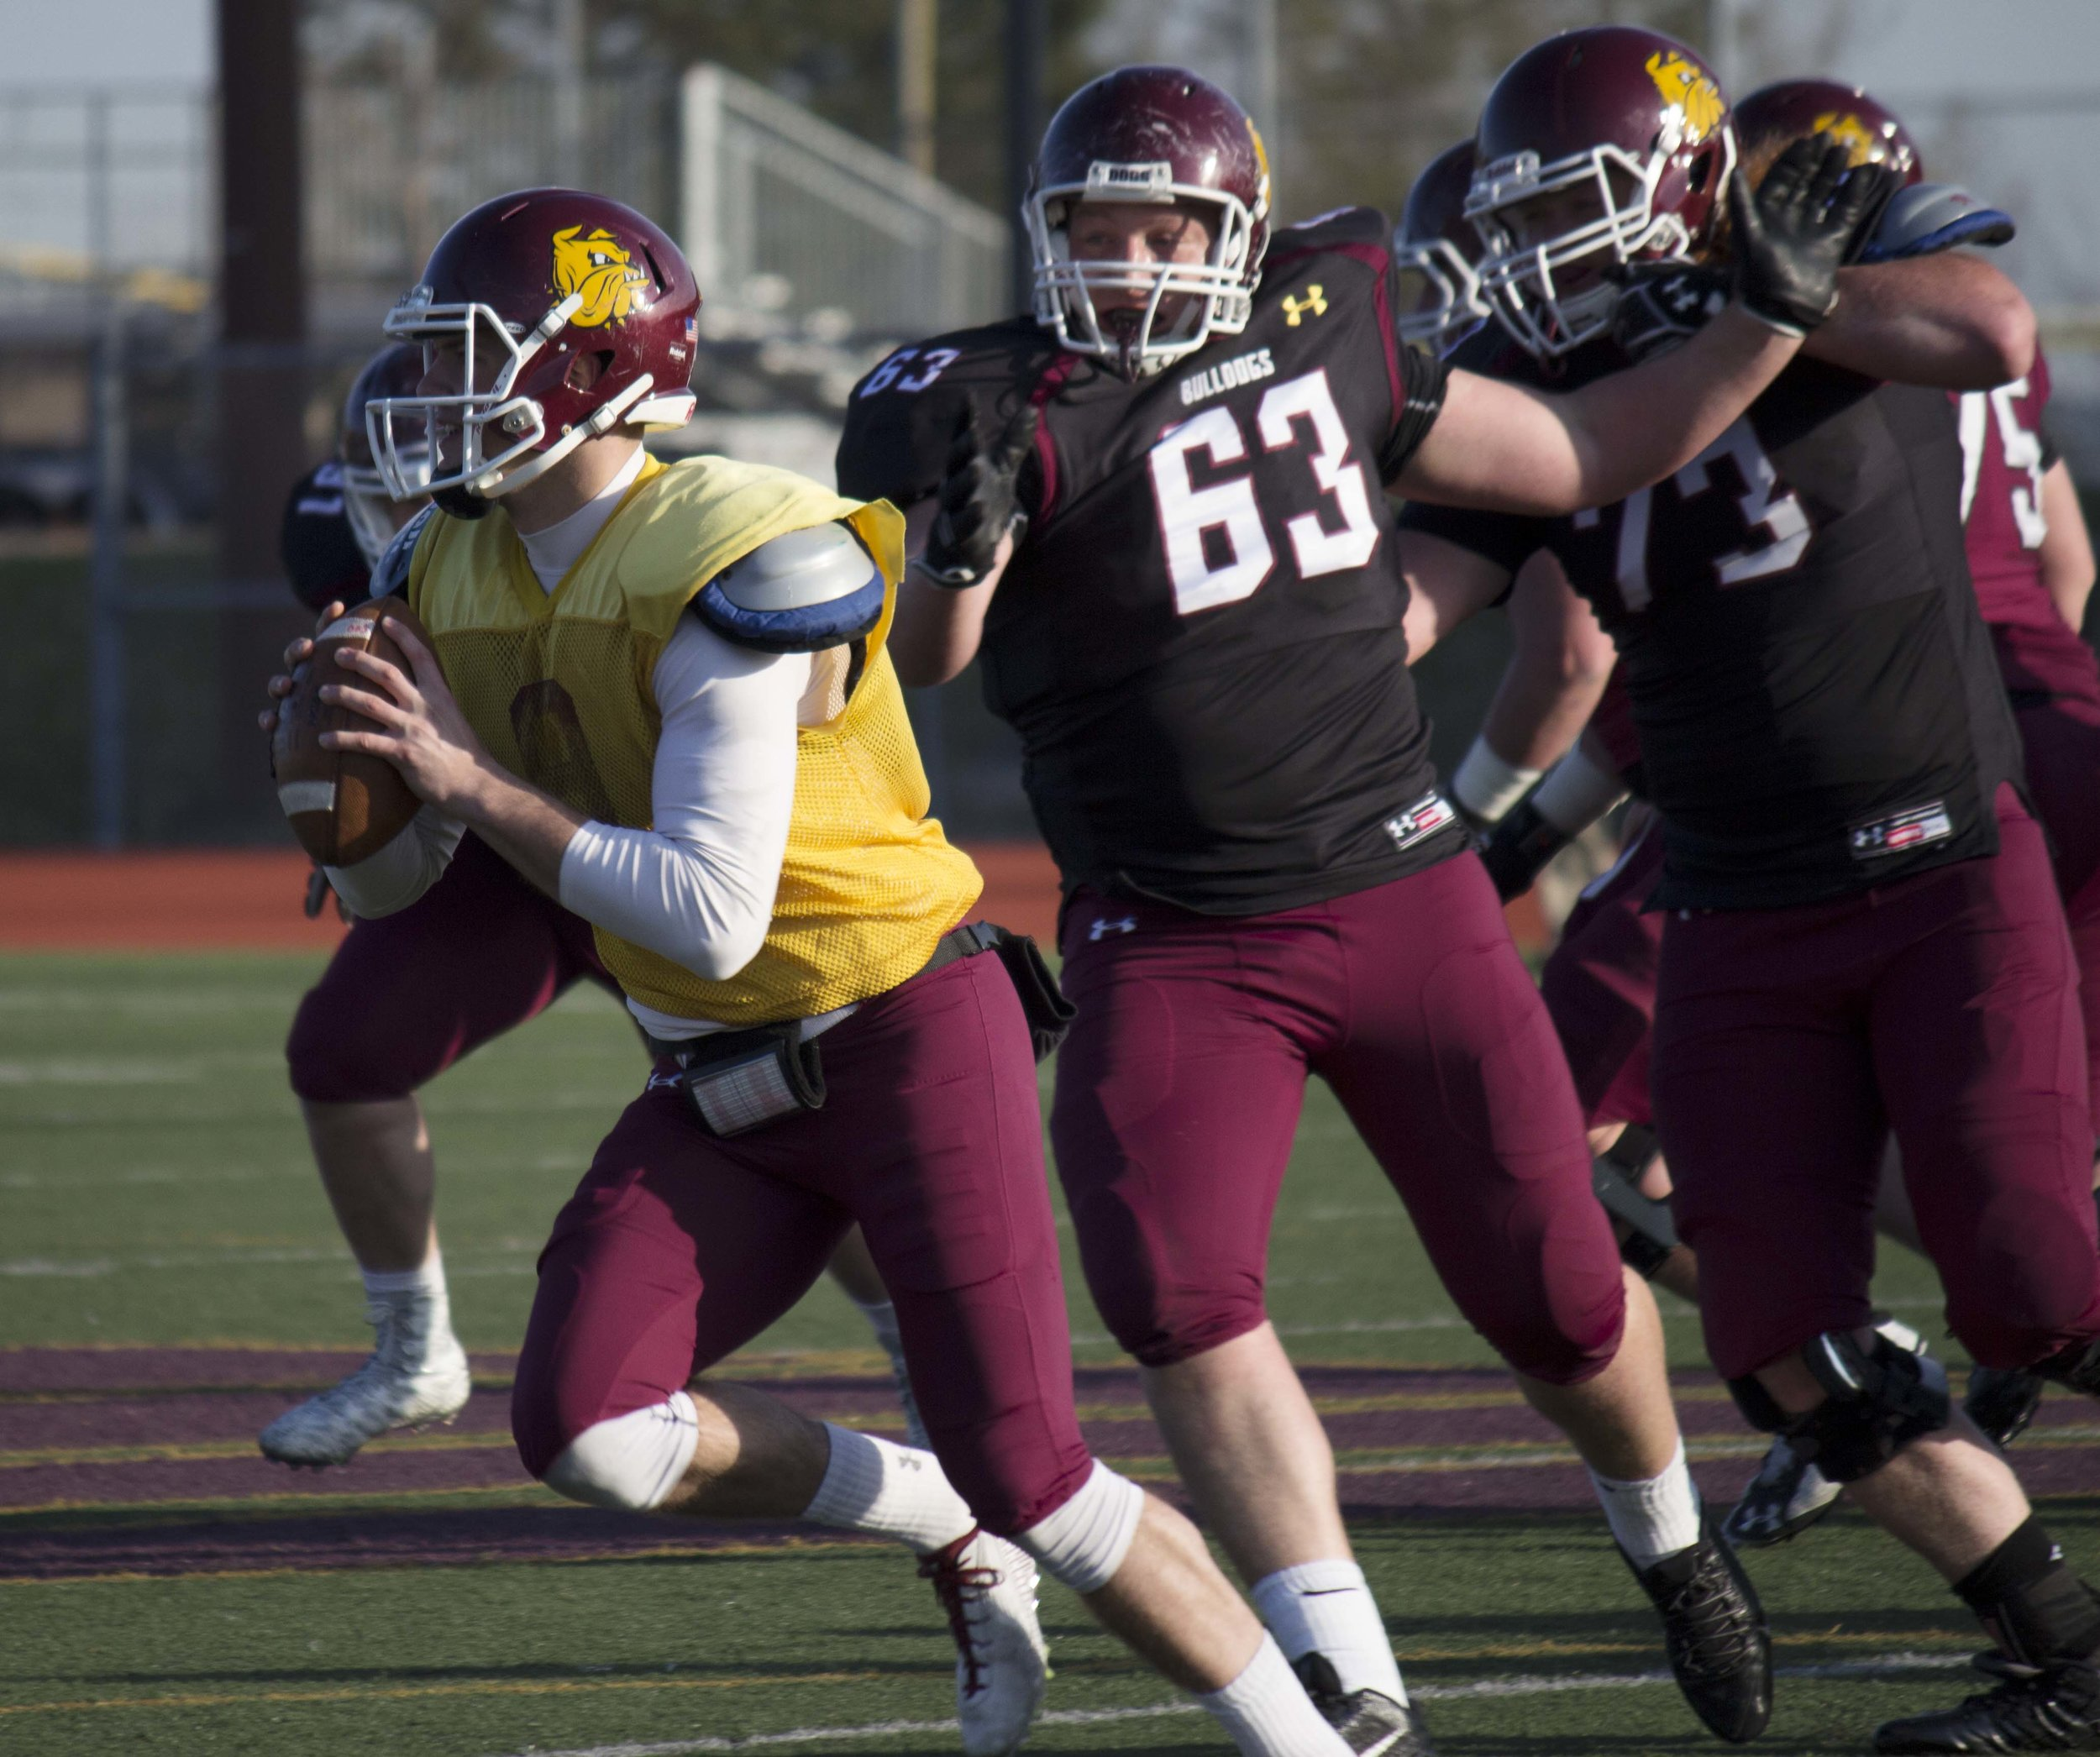 After missing the final three games pf the 2015 season, quarterback Drew Bauer returned to form in the spring football game, passing for 144 yards and one touchdown. Bauer also led the maroon team on a game winning drive, capped off by a well thrown touchdown pass to James Connor with 31 seconds to play to give the maroon team a 14-10 win over team white. BRAD EISCHENS/STATESMAN